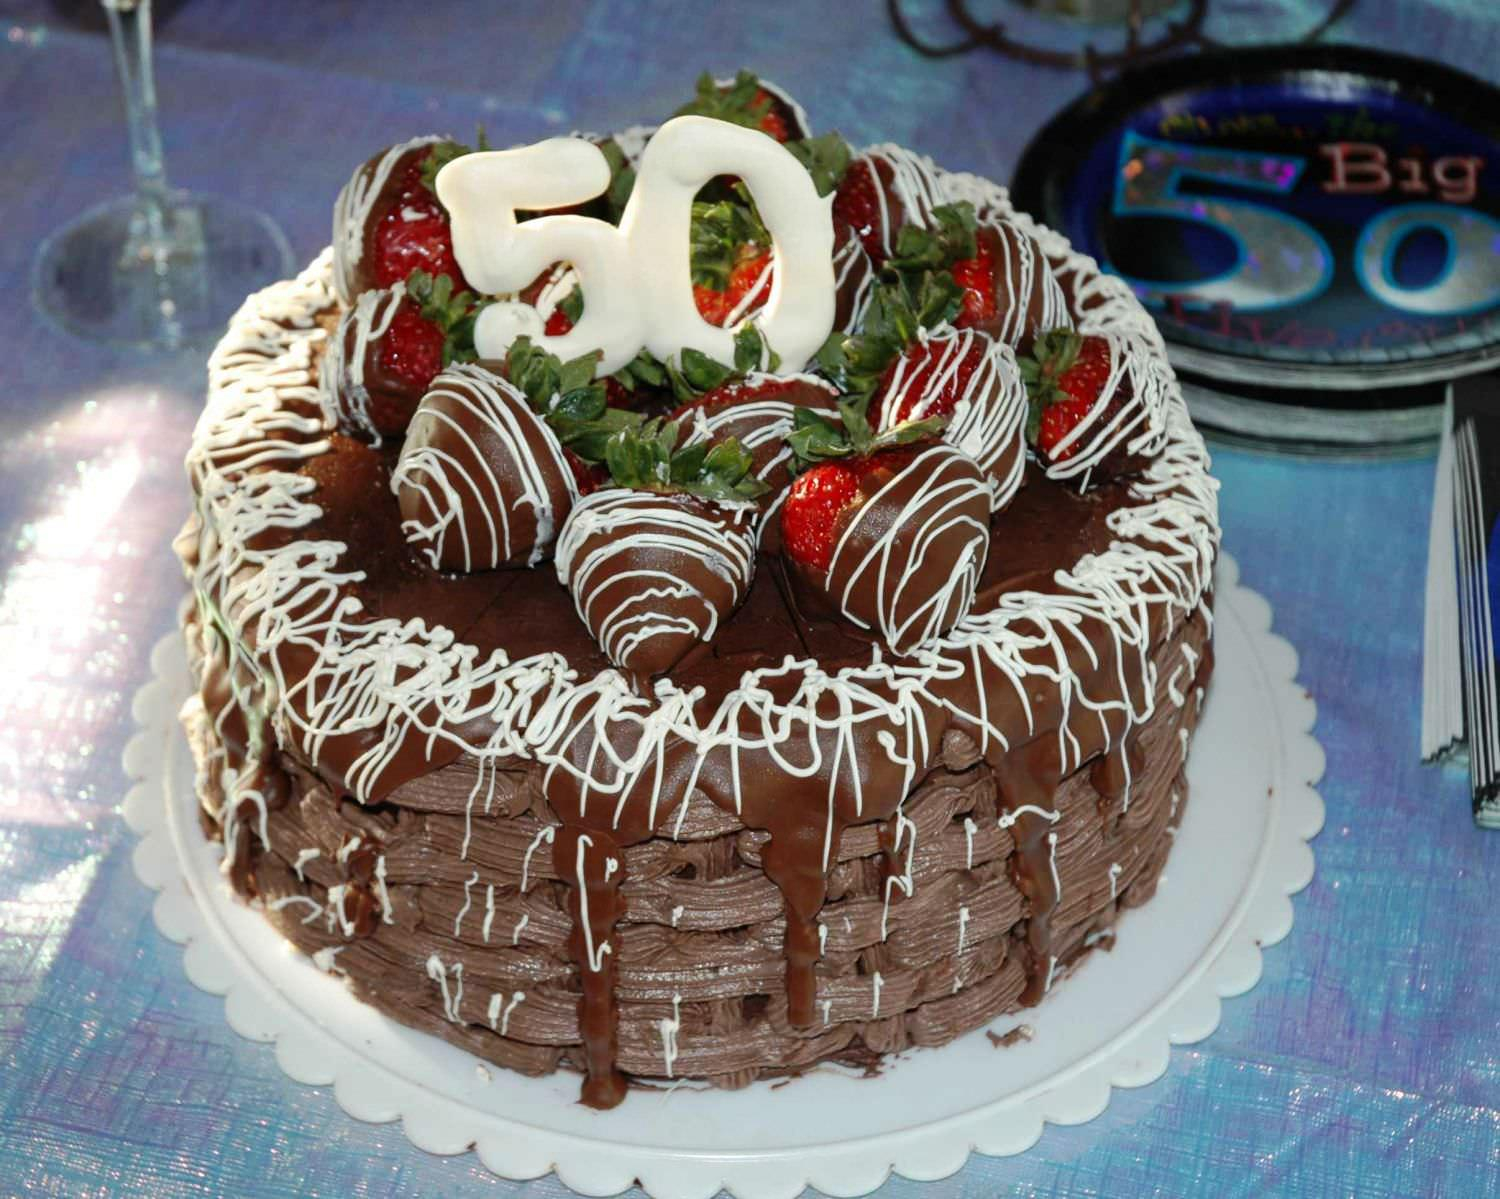 50Th Birthday Cake Ideas For Him 8 50th Chocolate Birthday Cakes For Men Photo 50th Birthday Cake